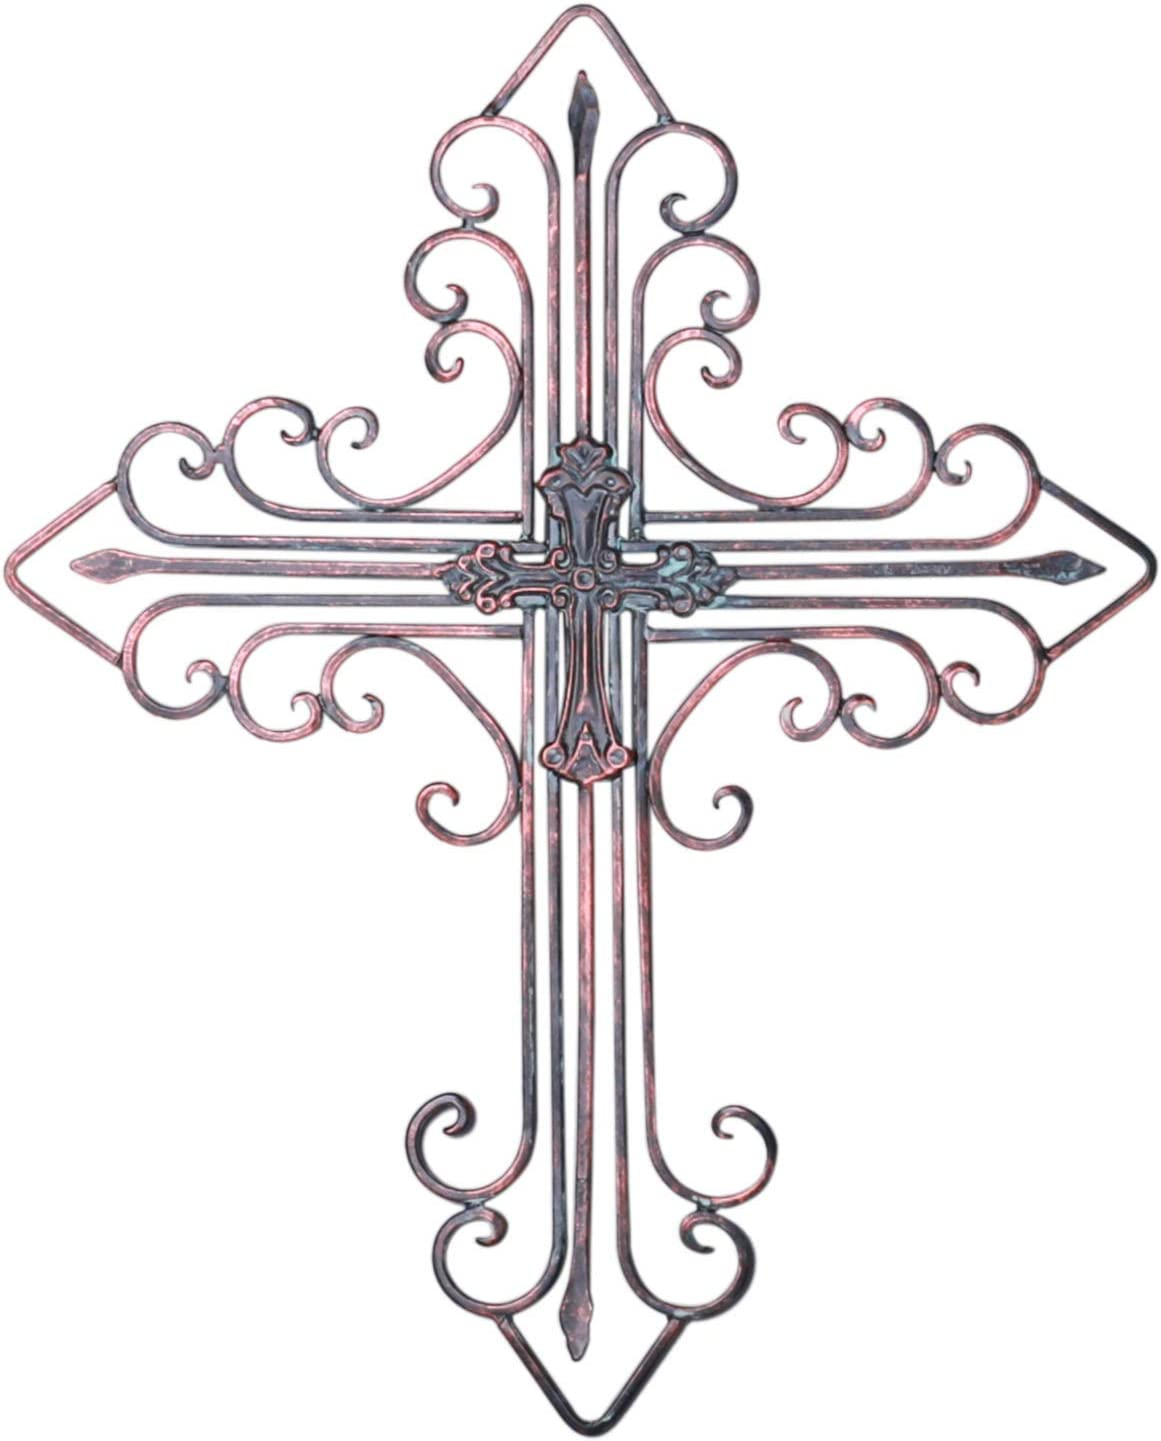 "Zksanmer Antique Wall Mount Layered Cross, Metal Scrolled Wall Art Wall Sculptures Cross with Hook, Decorative Iron Hanging Cross Home Decor, 14.2"" x 17.3"", Copper Brown"